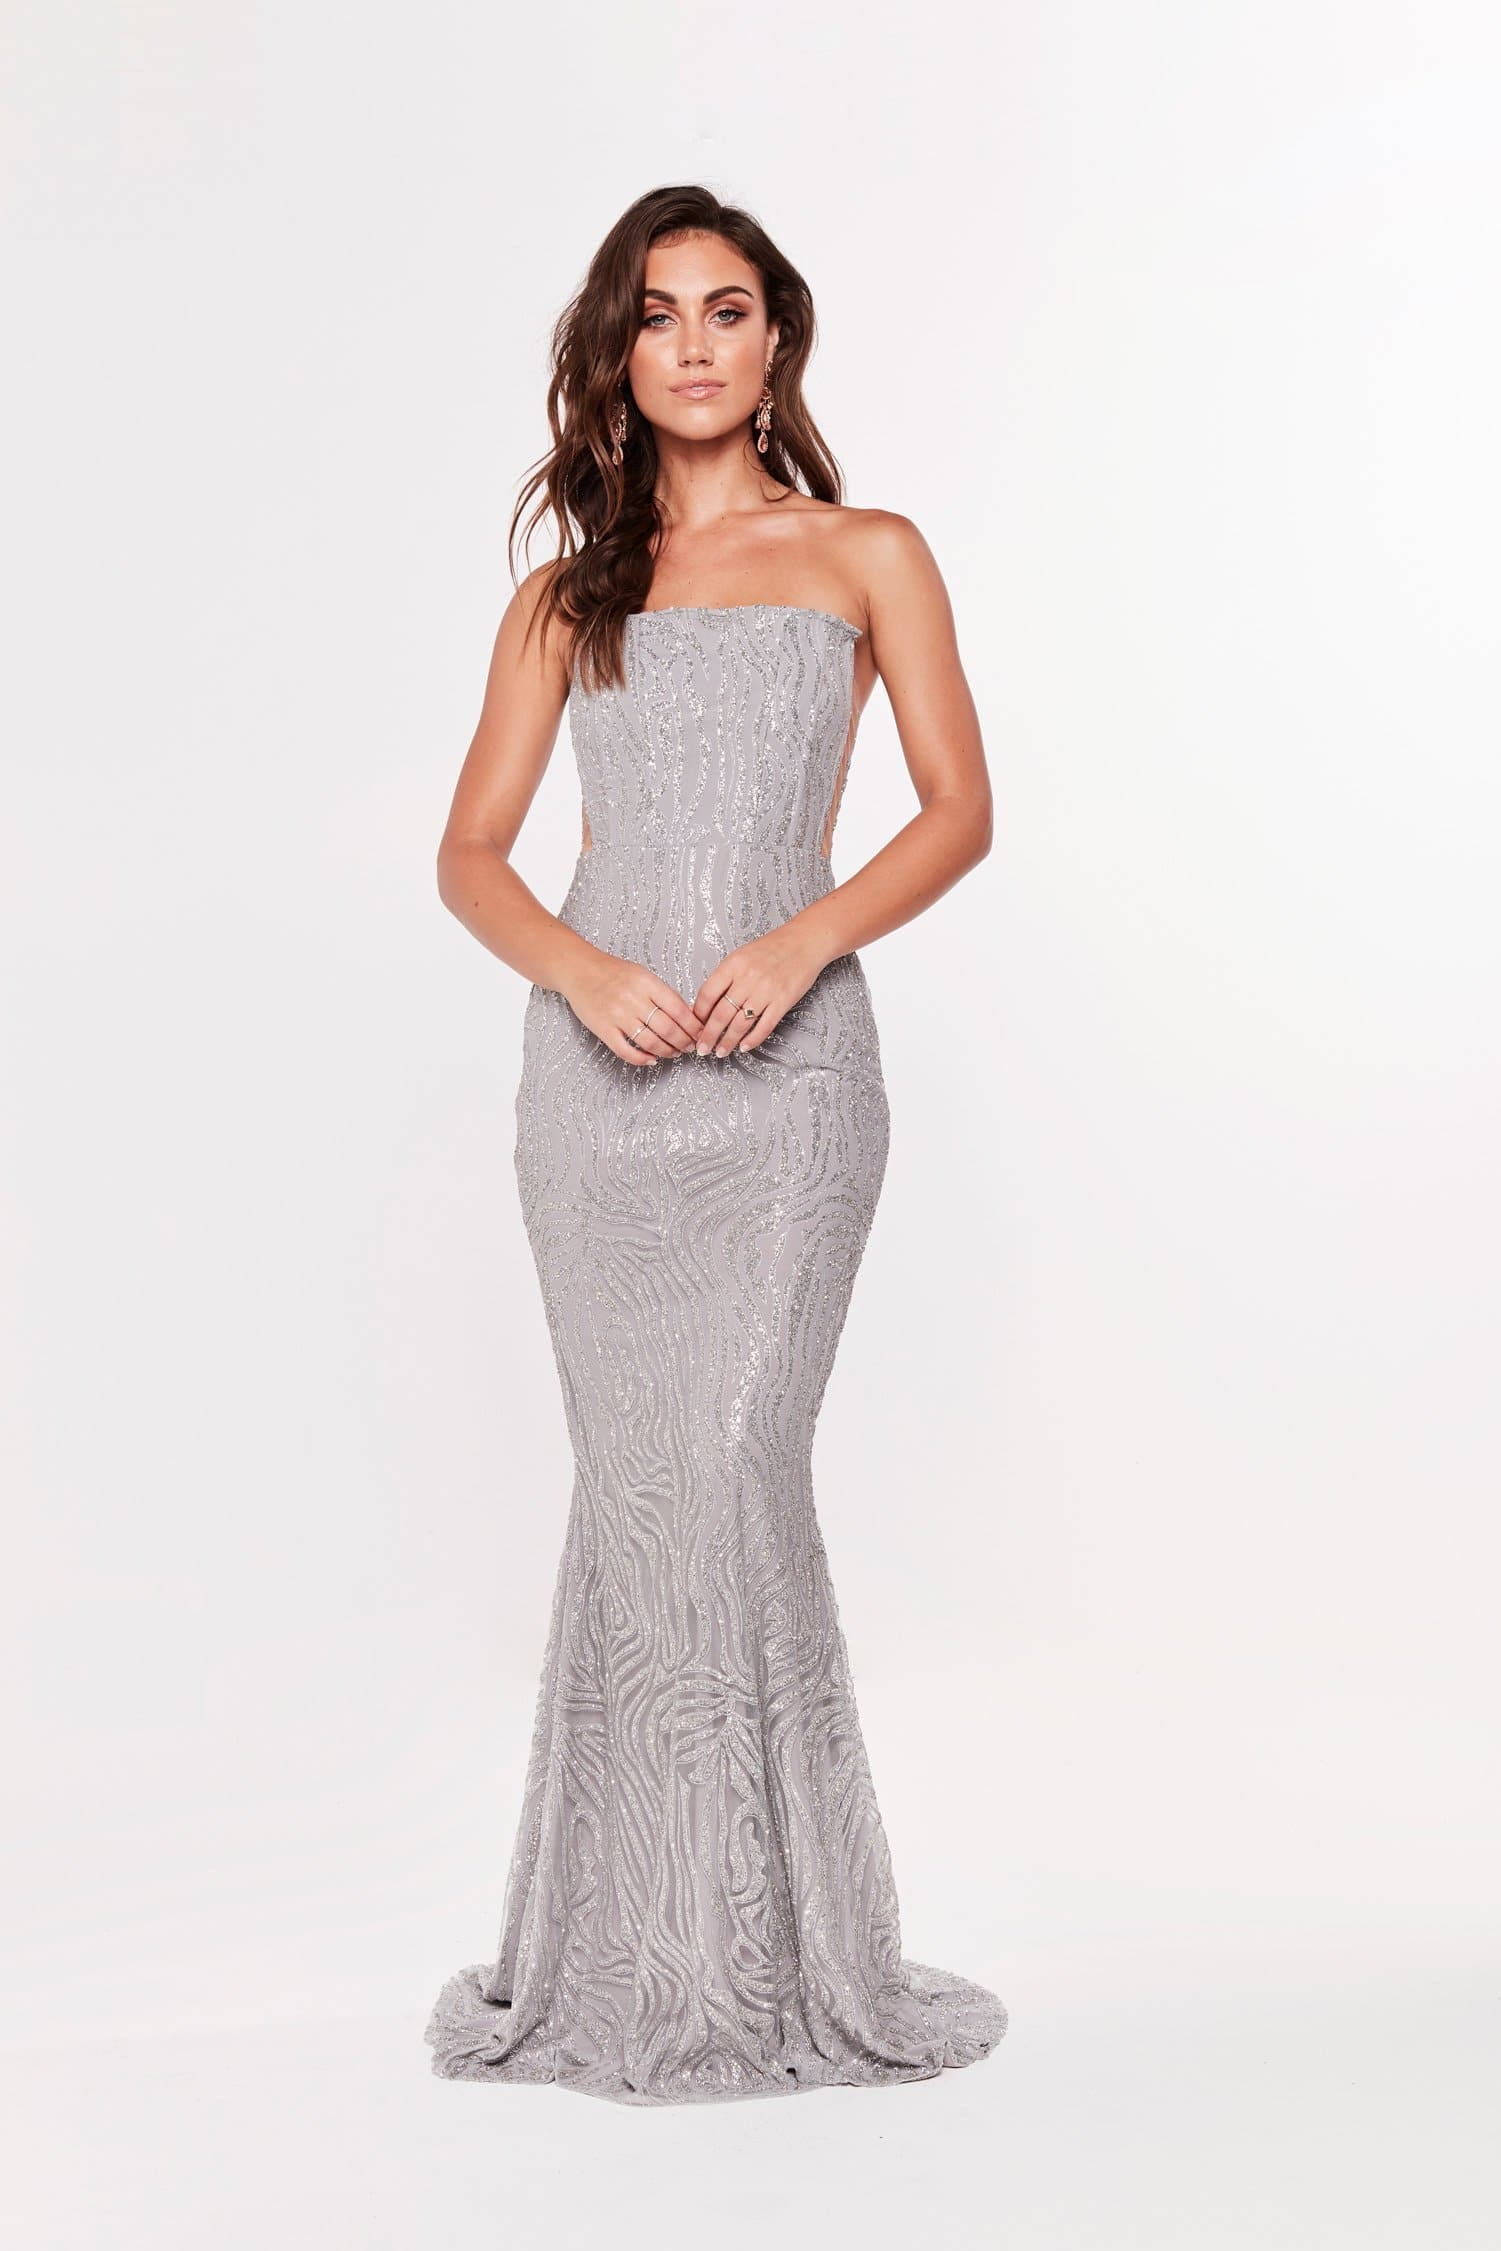 A&N Luxe Mina Glitter Mermaid Gown - Silver